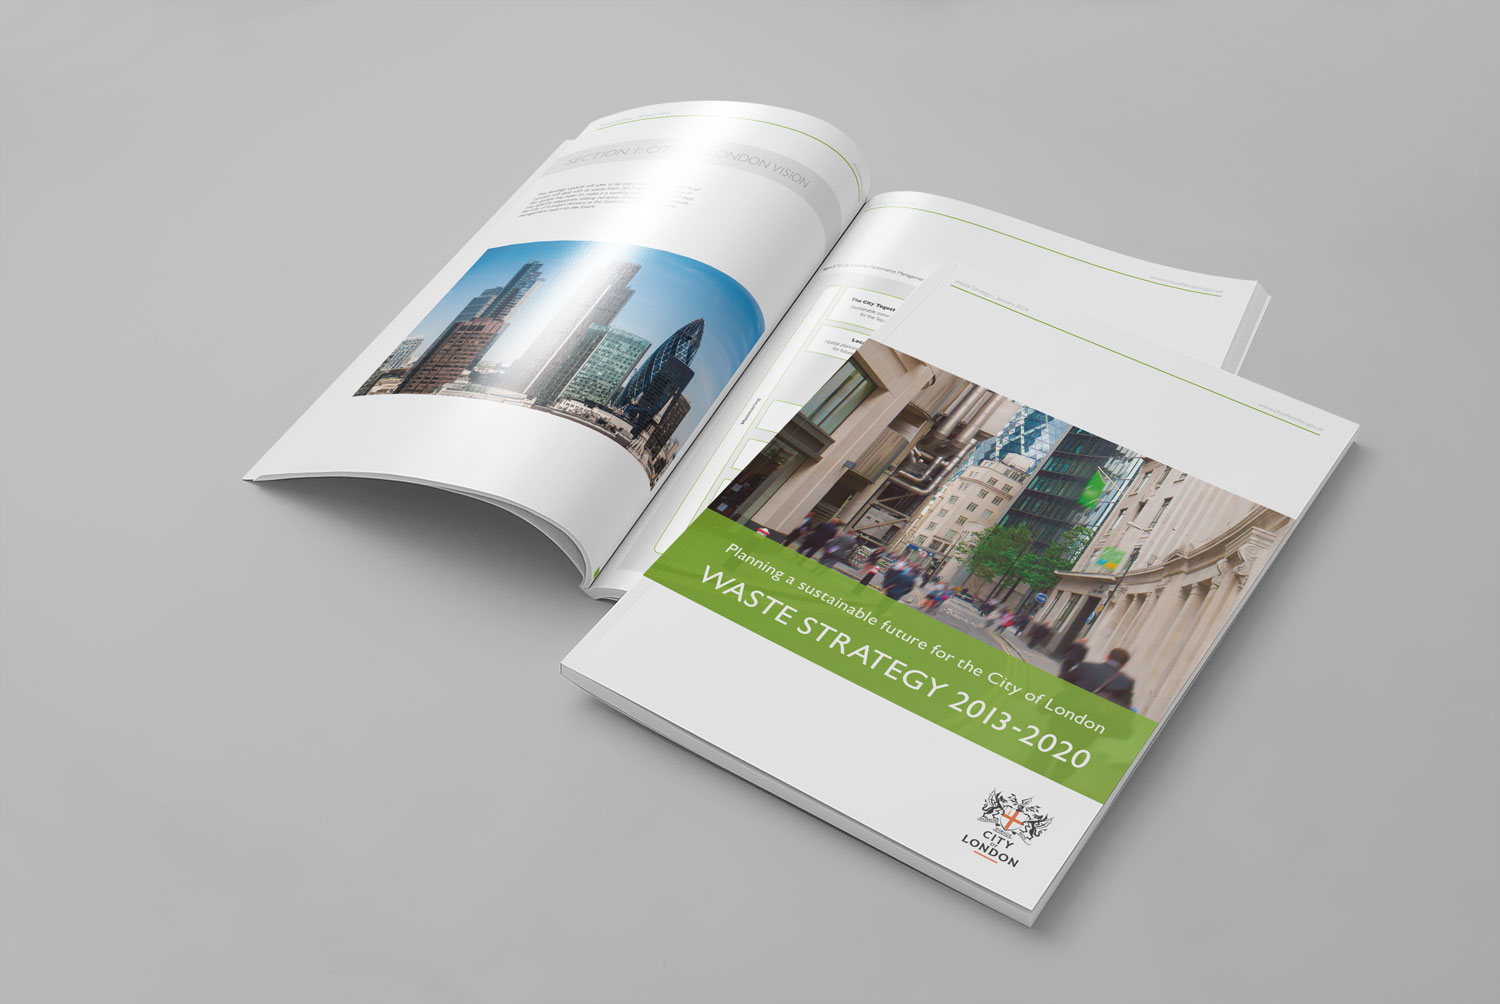 City-of-London-Waste-Strategy-A4-Brochure-get-it-sorted.jpg